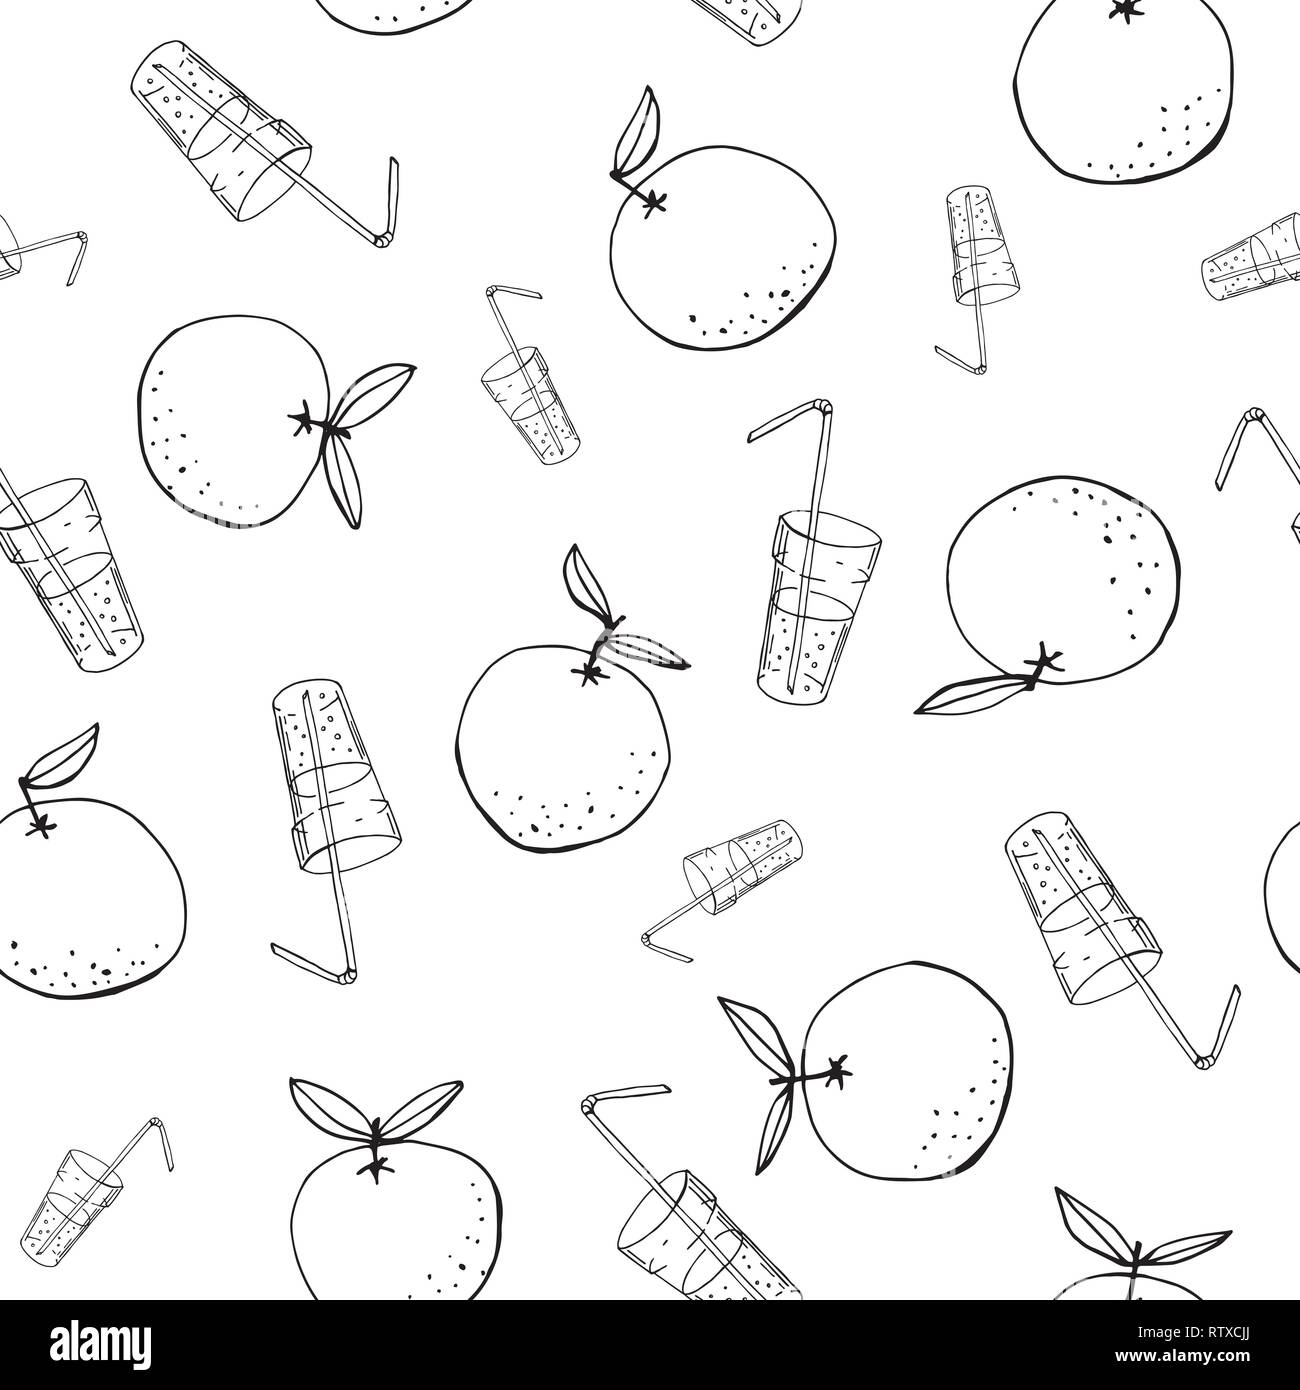 Whimsical hand-drawn doodle oranges and juice vector seamless pattern background. Abstract Line Art Summer Fruits Graphic Print Perfect for Kids. - Stock Image